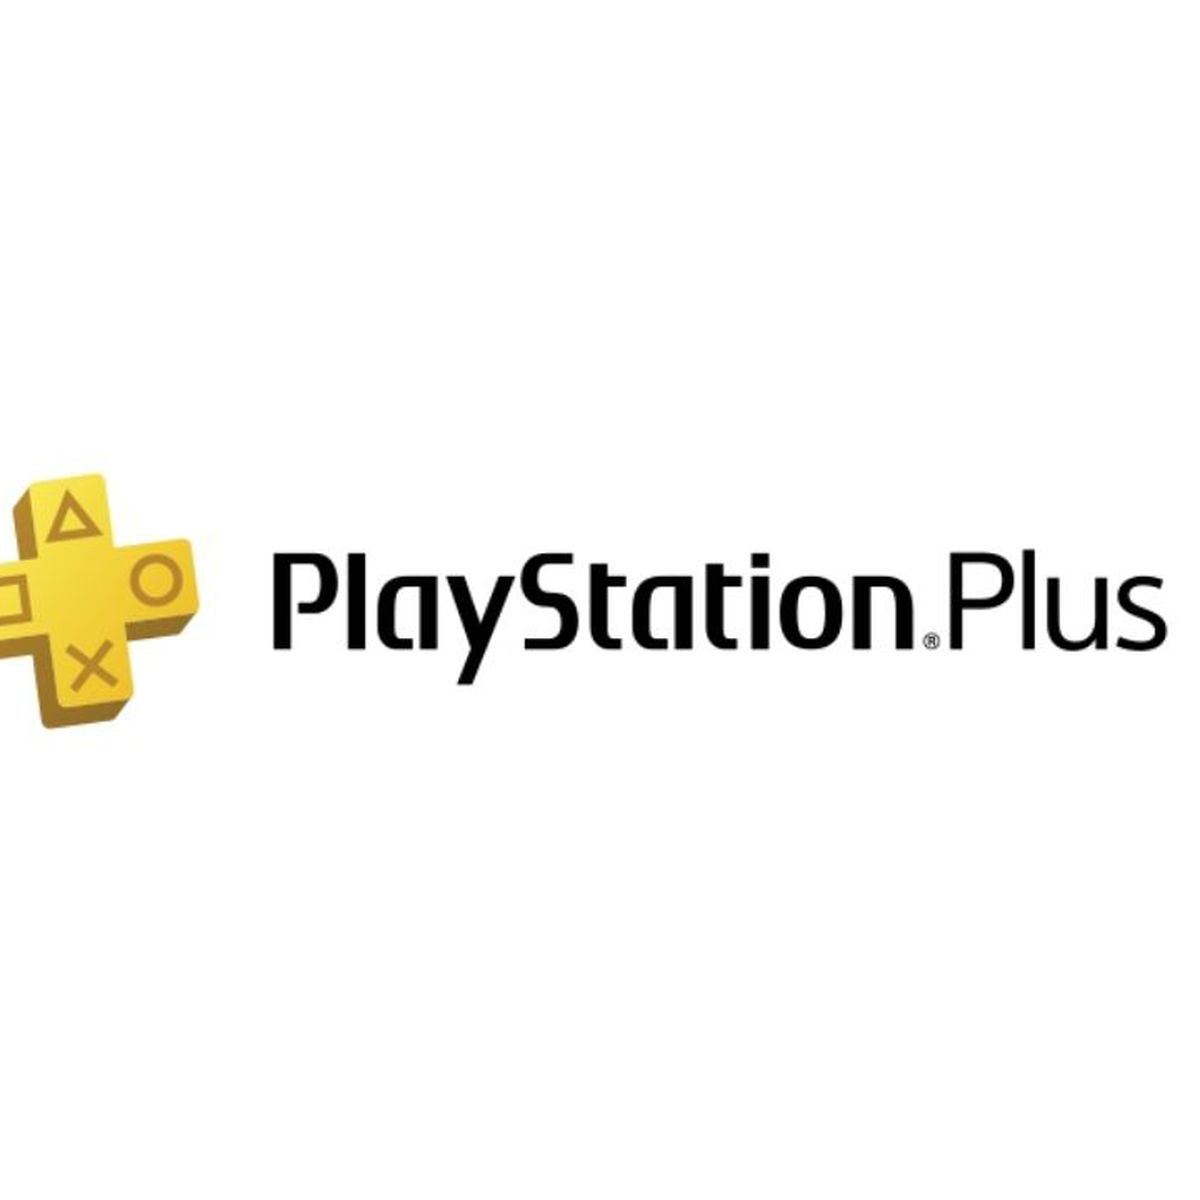 Grab a full year of PlayStation Plus for only $27